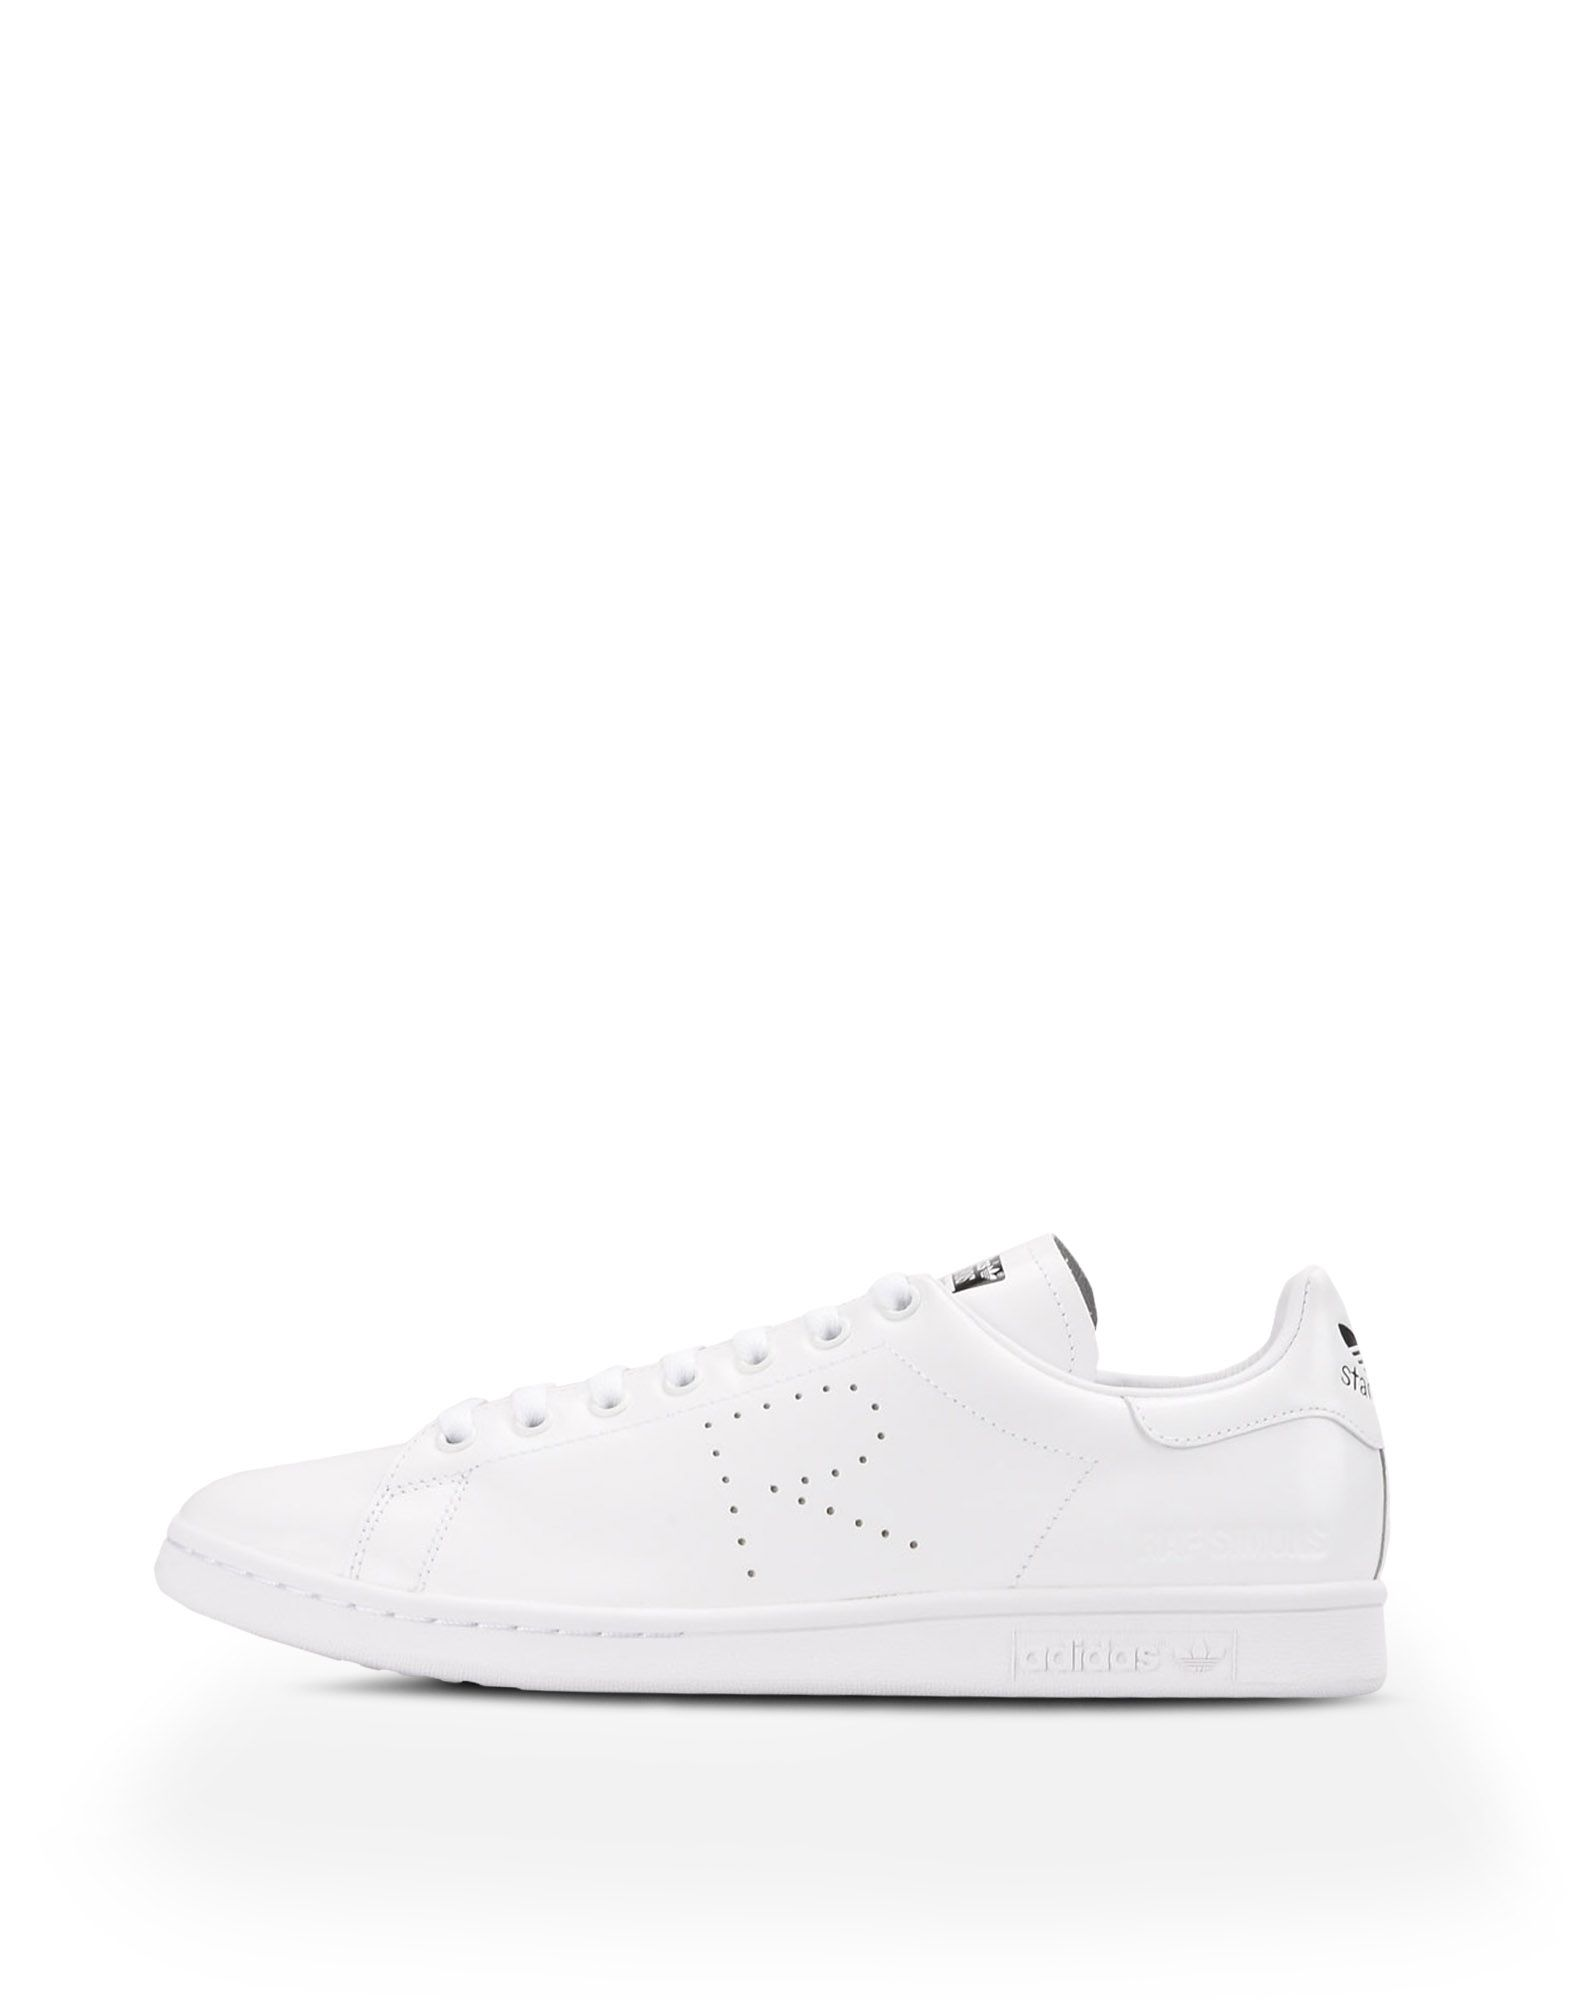 RAF SIMONS STAN SMITH SHOES unisex Y-3 adidas